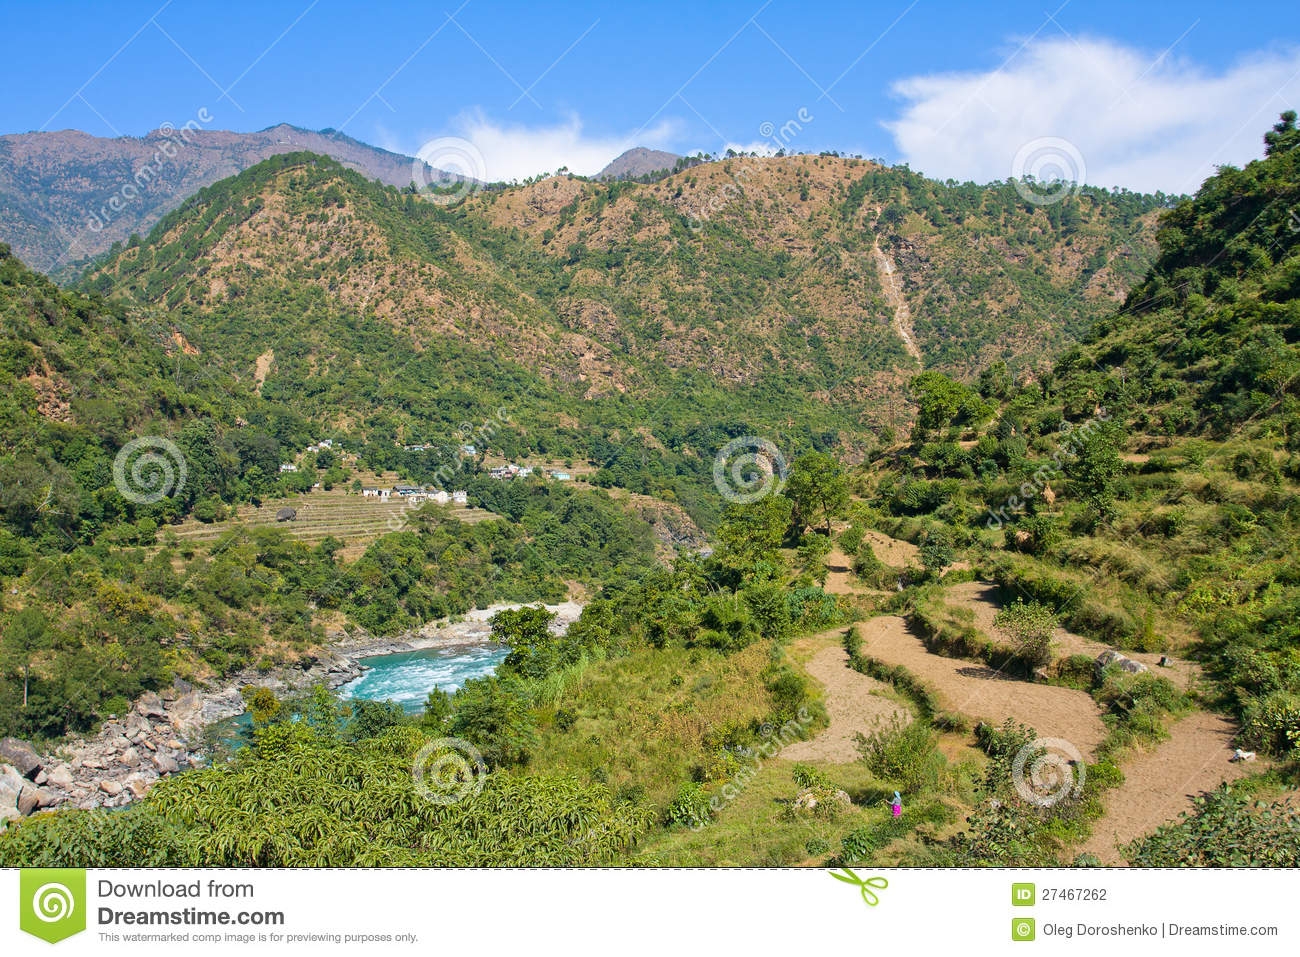 Ganges River In Himalayas Mountains Stock Photography ...